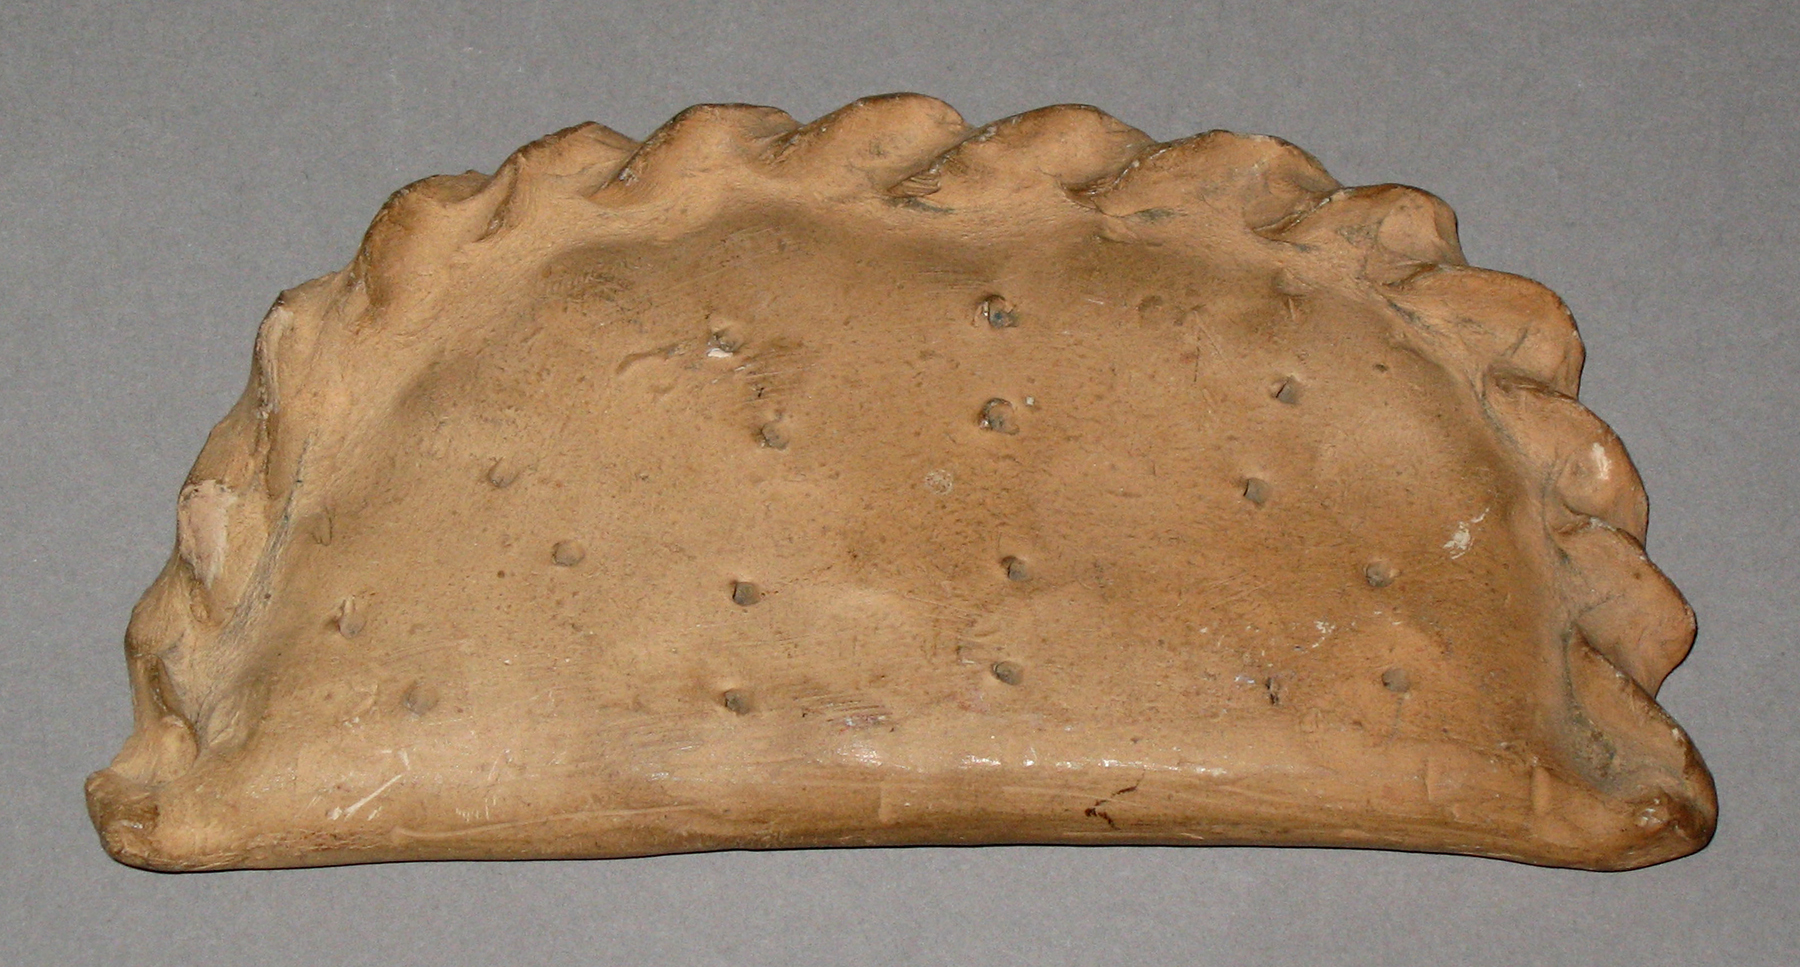 1964.1679 Chalkware pastry or turnover